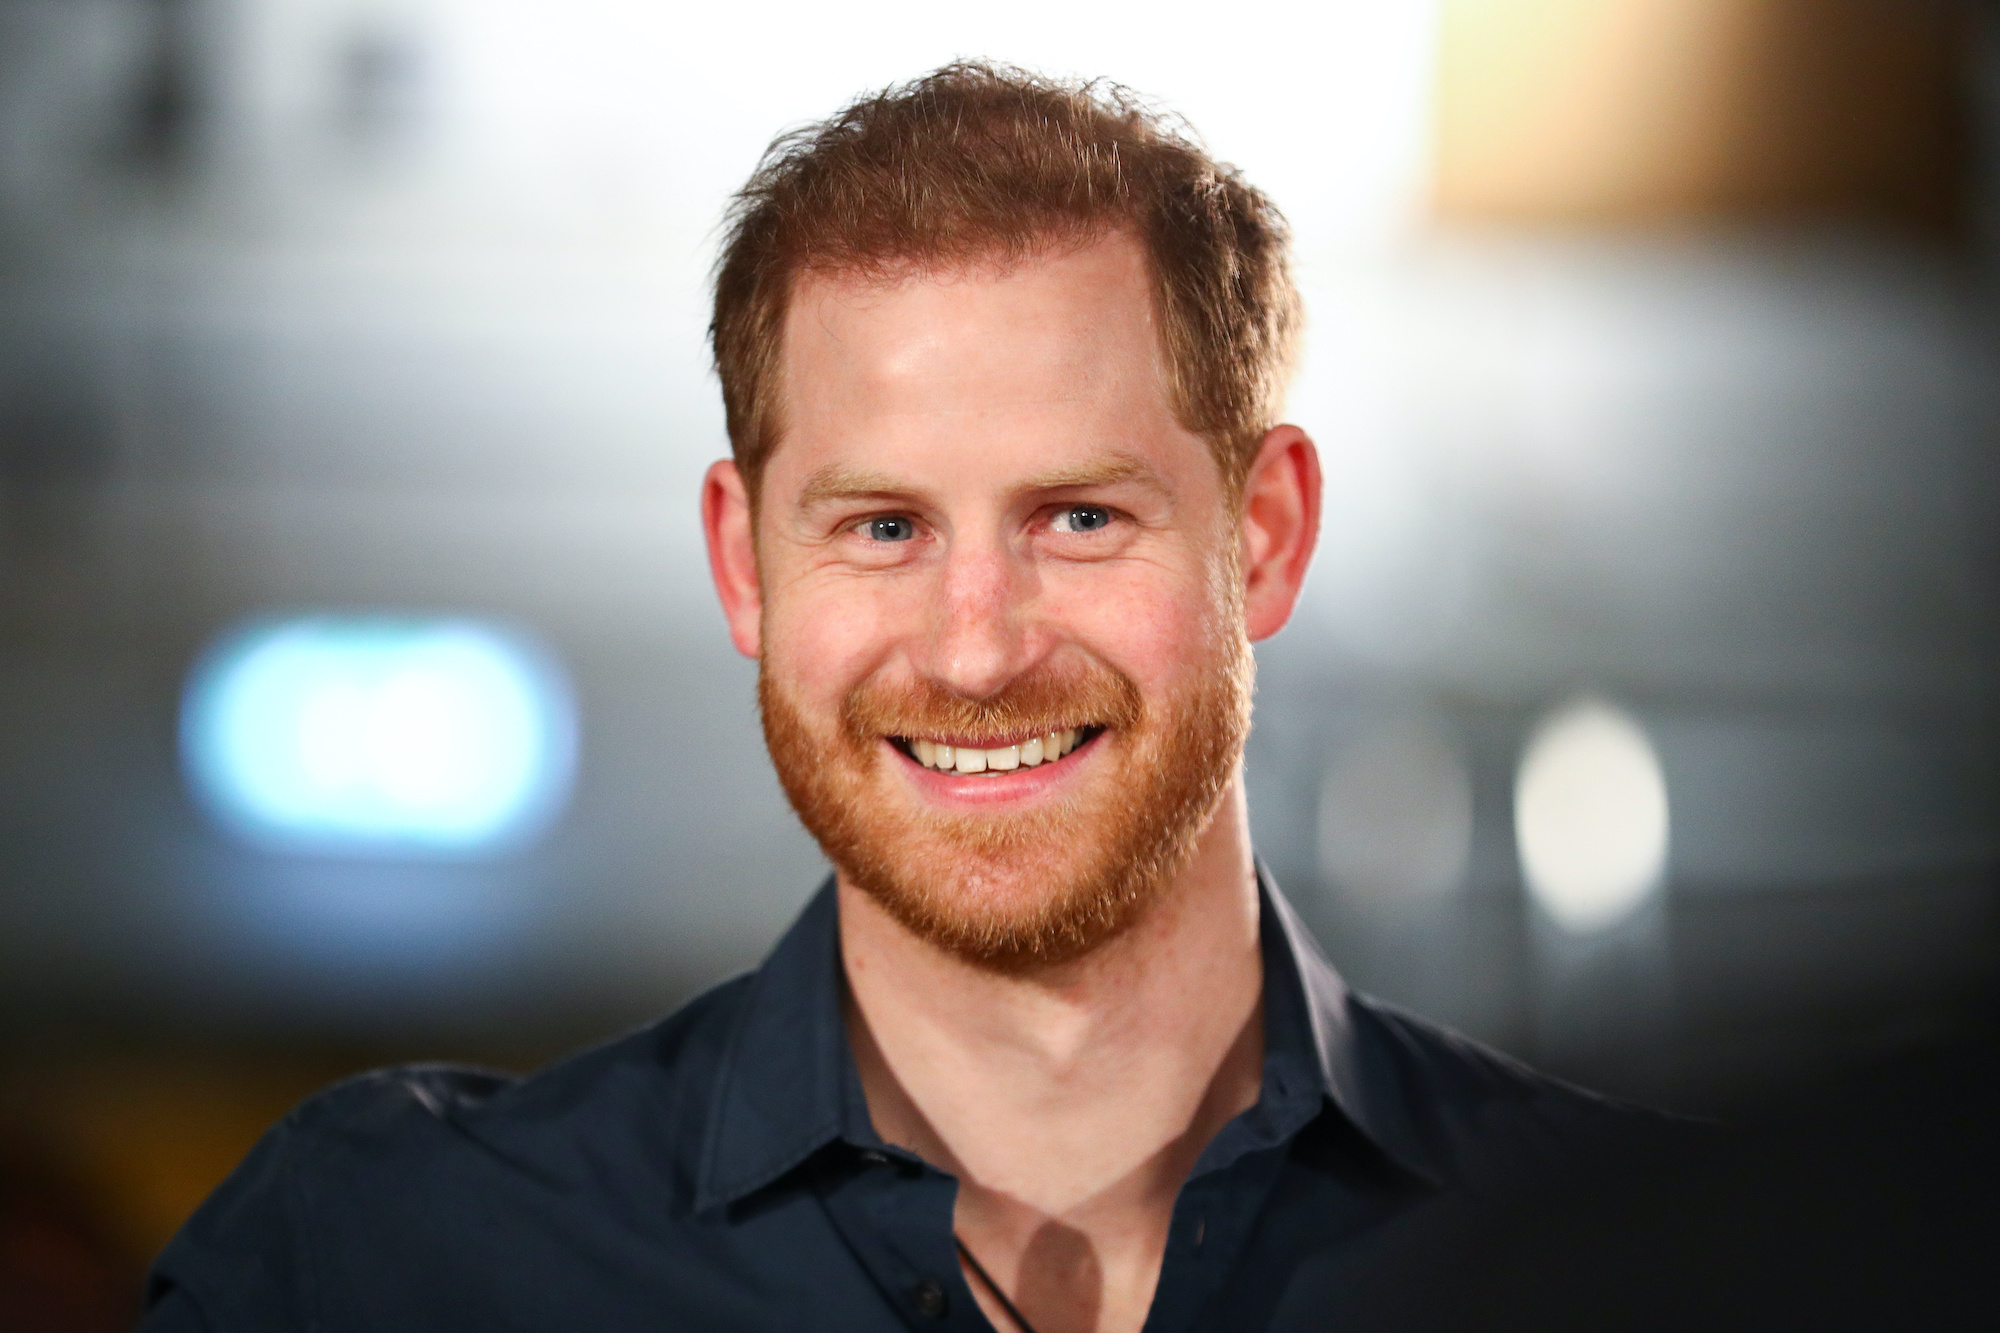 Prince Harry Brings 'Unpredictability' to His Public Appearances, Royal Photographer Says